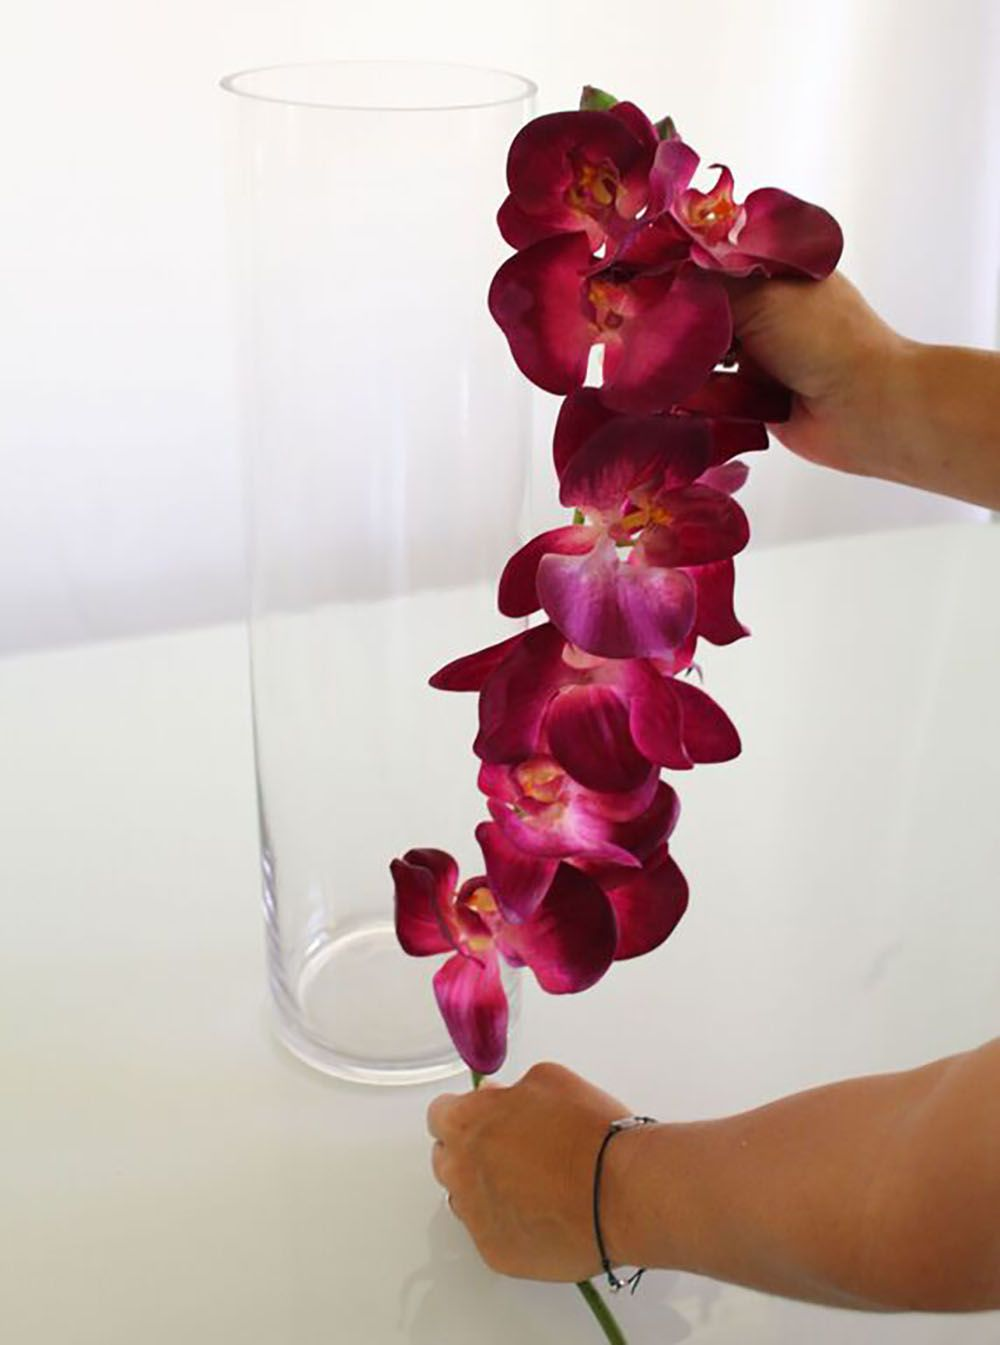 DIY Glowing Submersible Centerpiece | Afloral.com Wedding Blog | Bea ...